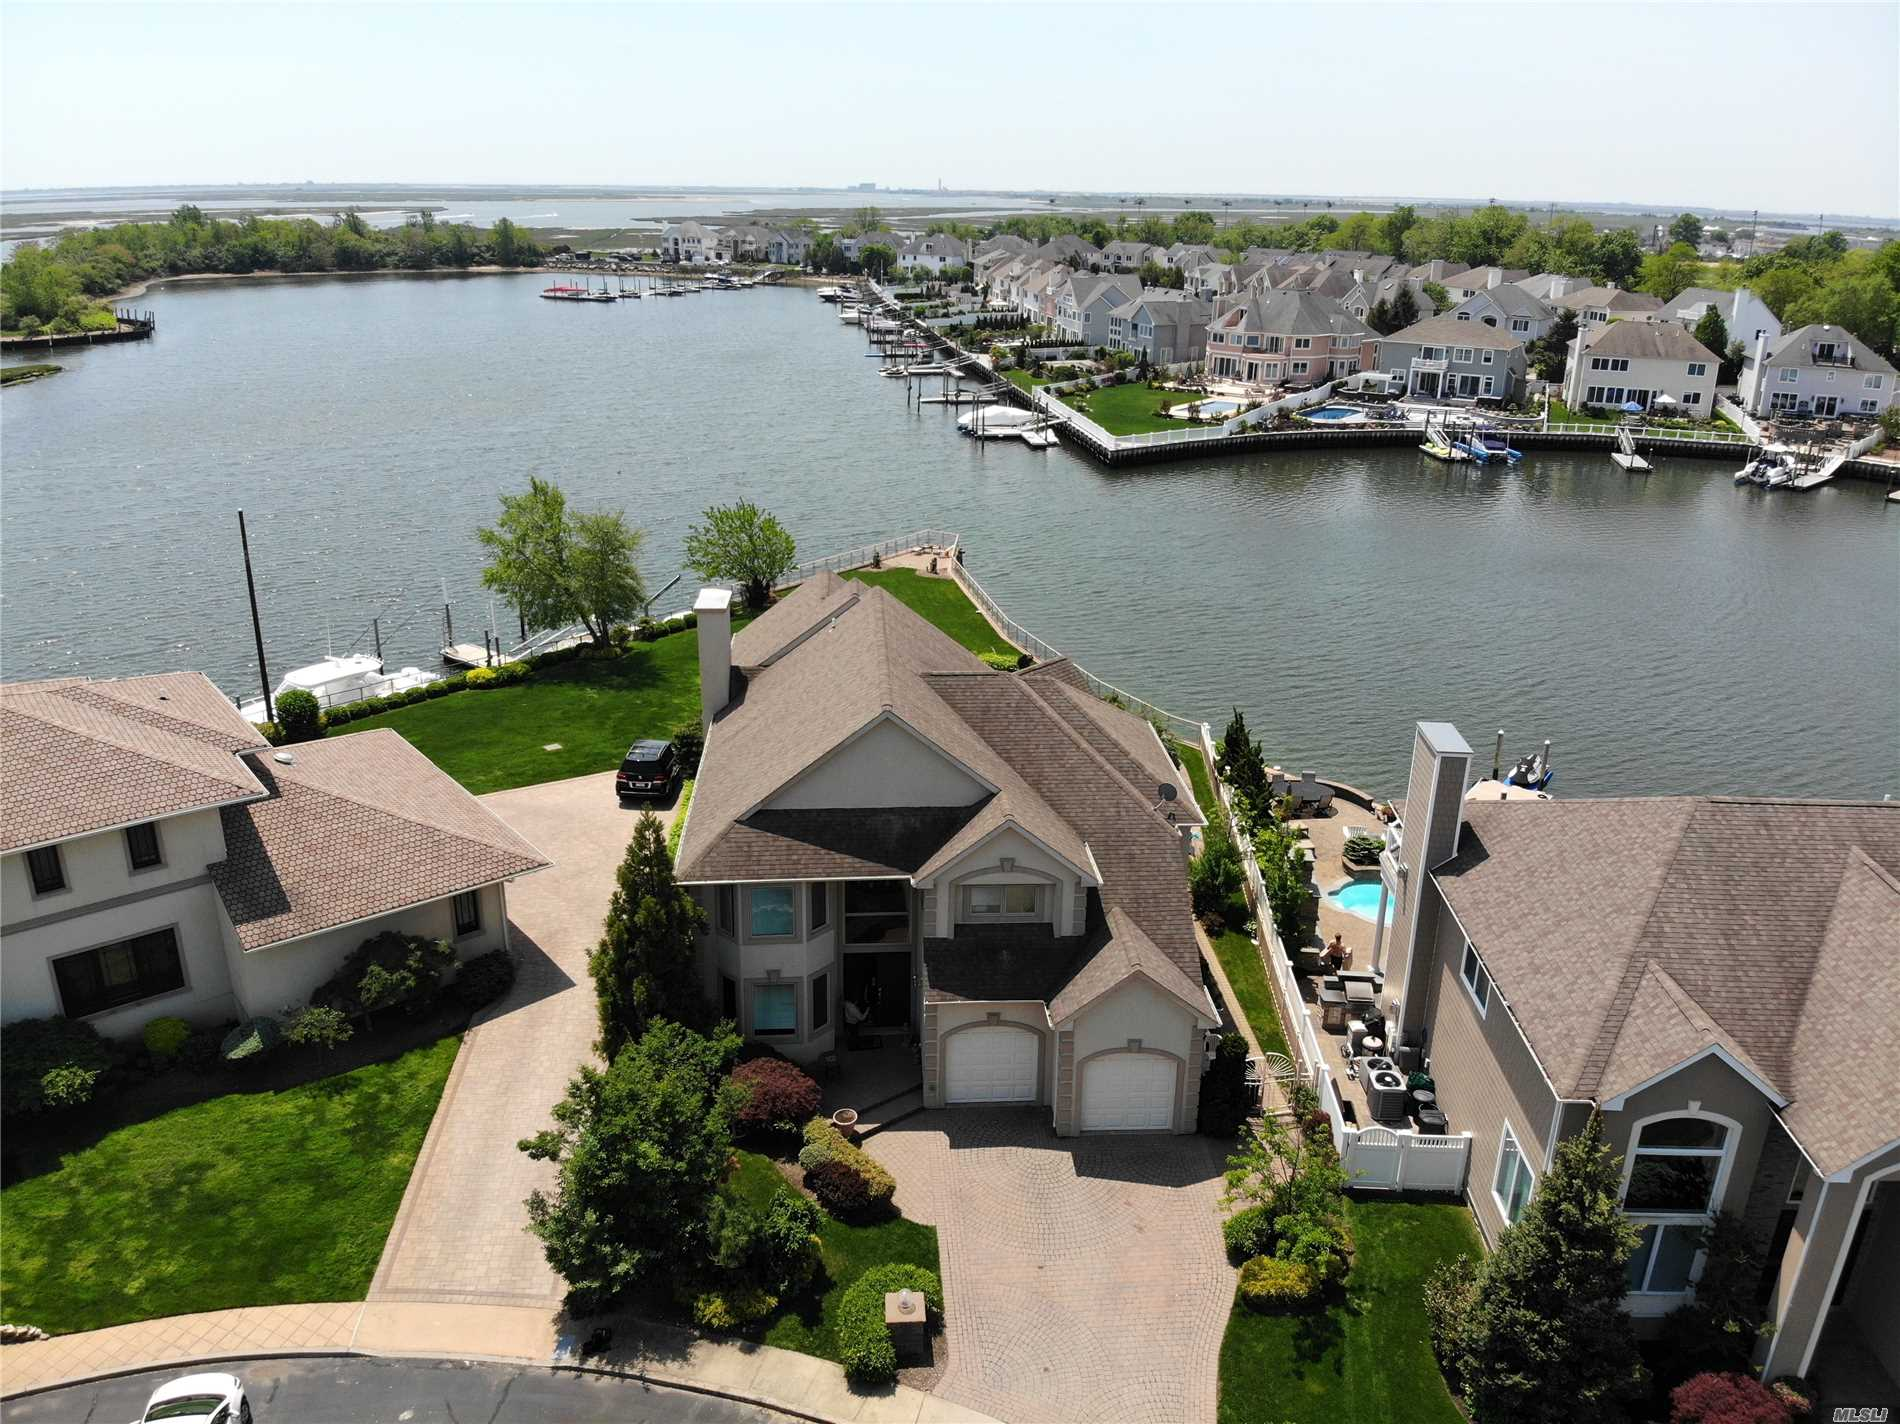 180' Of Bulkhead, Scenic  Seller Offering $10, 000 First Year Tax Credit. Taxes Have Been Grieved. Letter On File Approx 25% Reduction. Amazing Waterfront W 3 Master-Sized Bedrooms, All W Their Own Baths, Granite & Stainless In Kitchen, Hw And Ceramic Tiles On Floors. Entertainment Yard W Ig Pool, Bulkhead Suitable For Large Boats, Seconds To The Open Bay! The Location & Condition Of This House Make It A Must See!